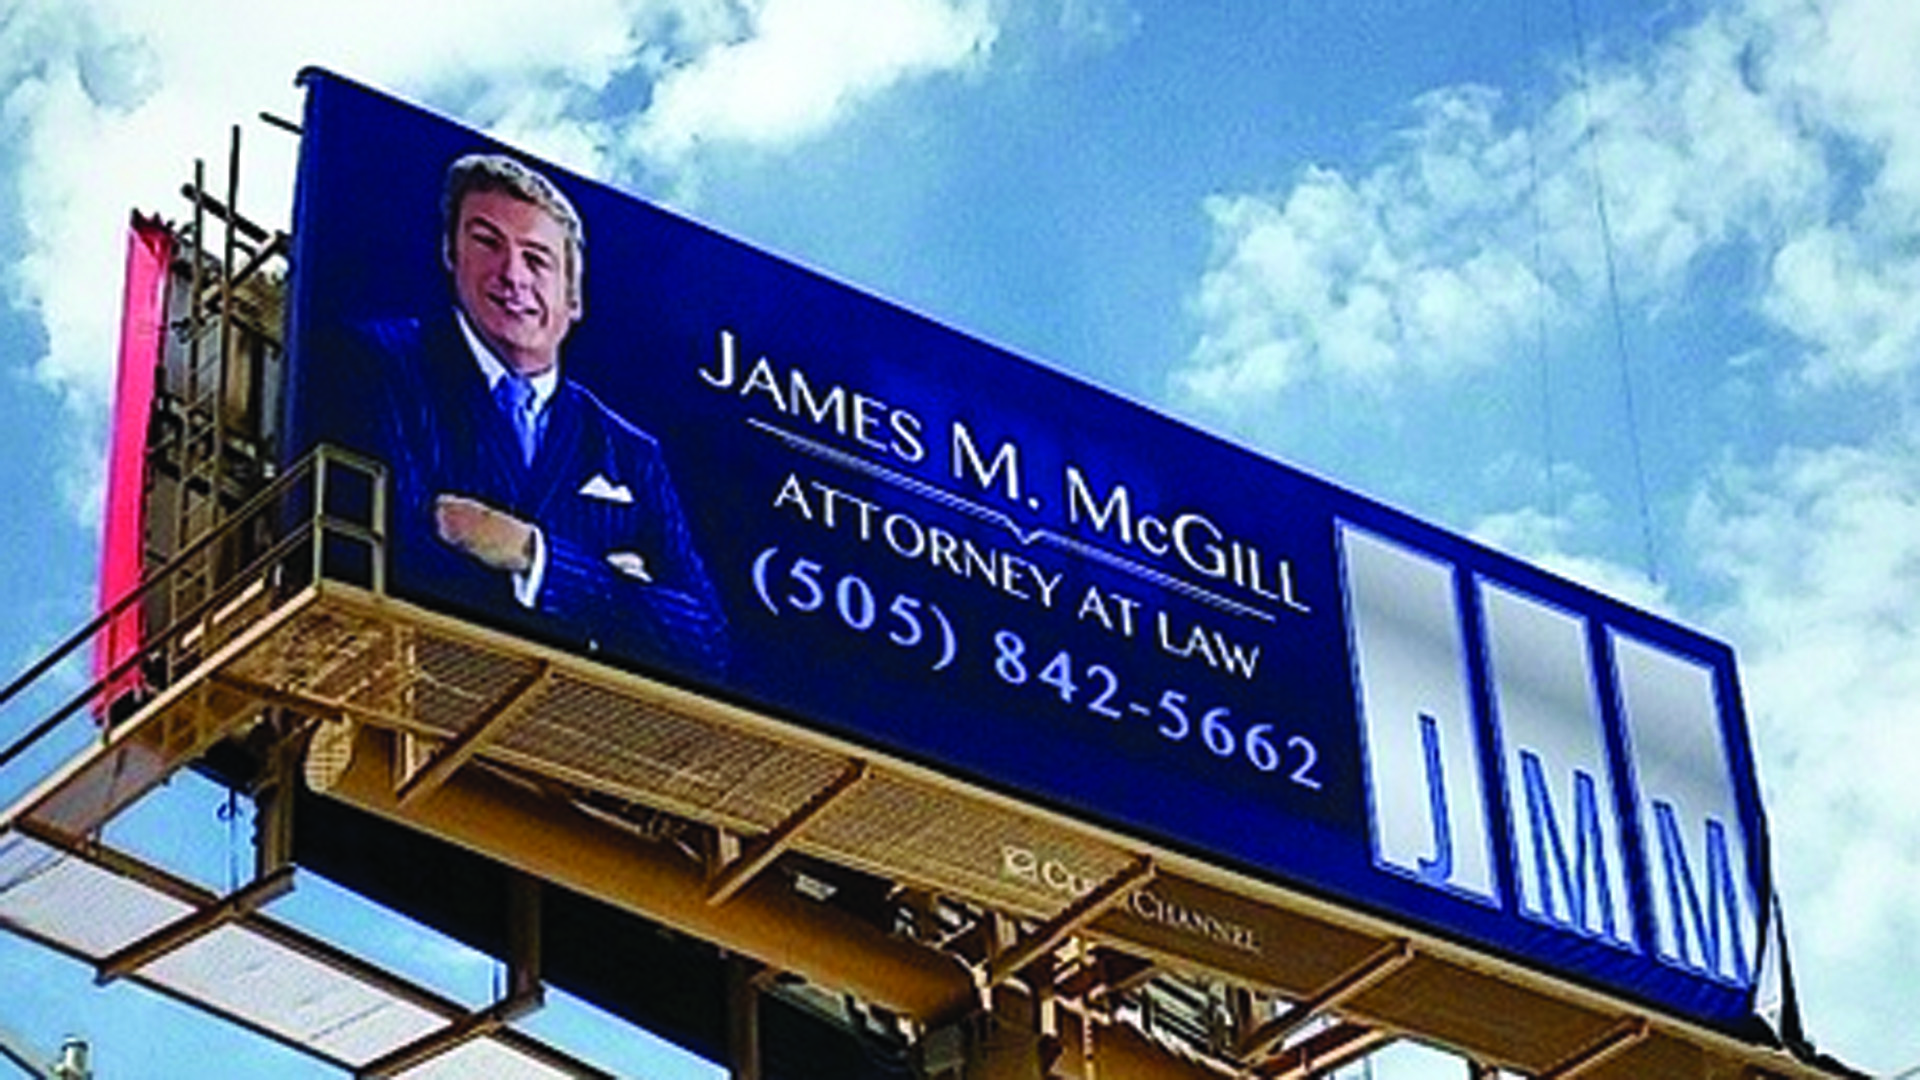 Better Call Saul Billboard Rings True For Albuquerque Residents